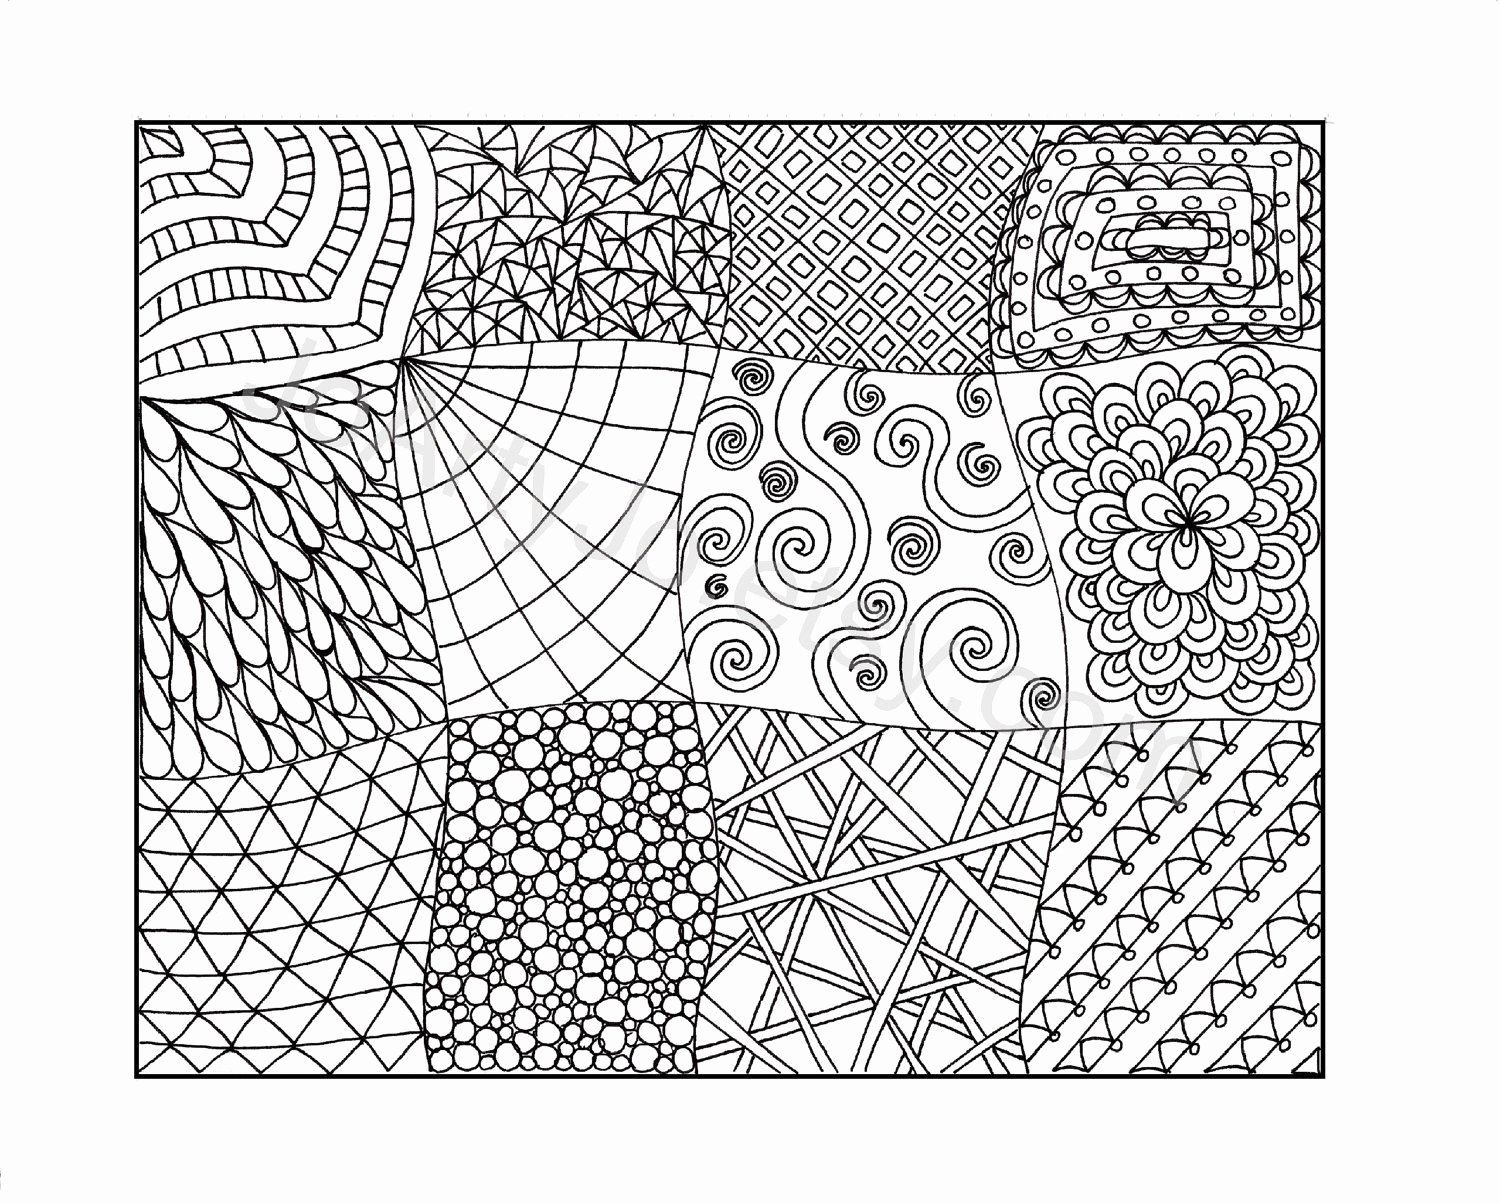 Zentangle Patterns to Print Elegant Zendoodle Coloring Page Printable Pdf Zentangle Inspired